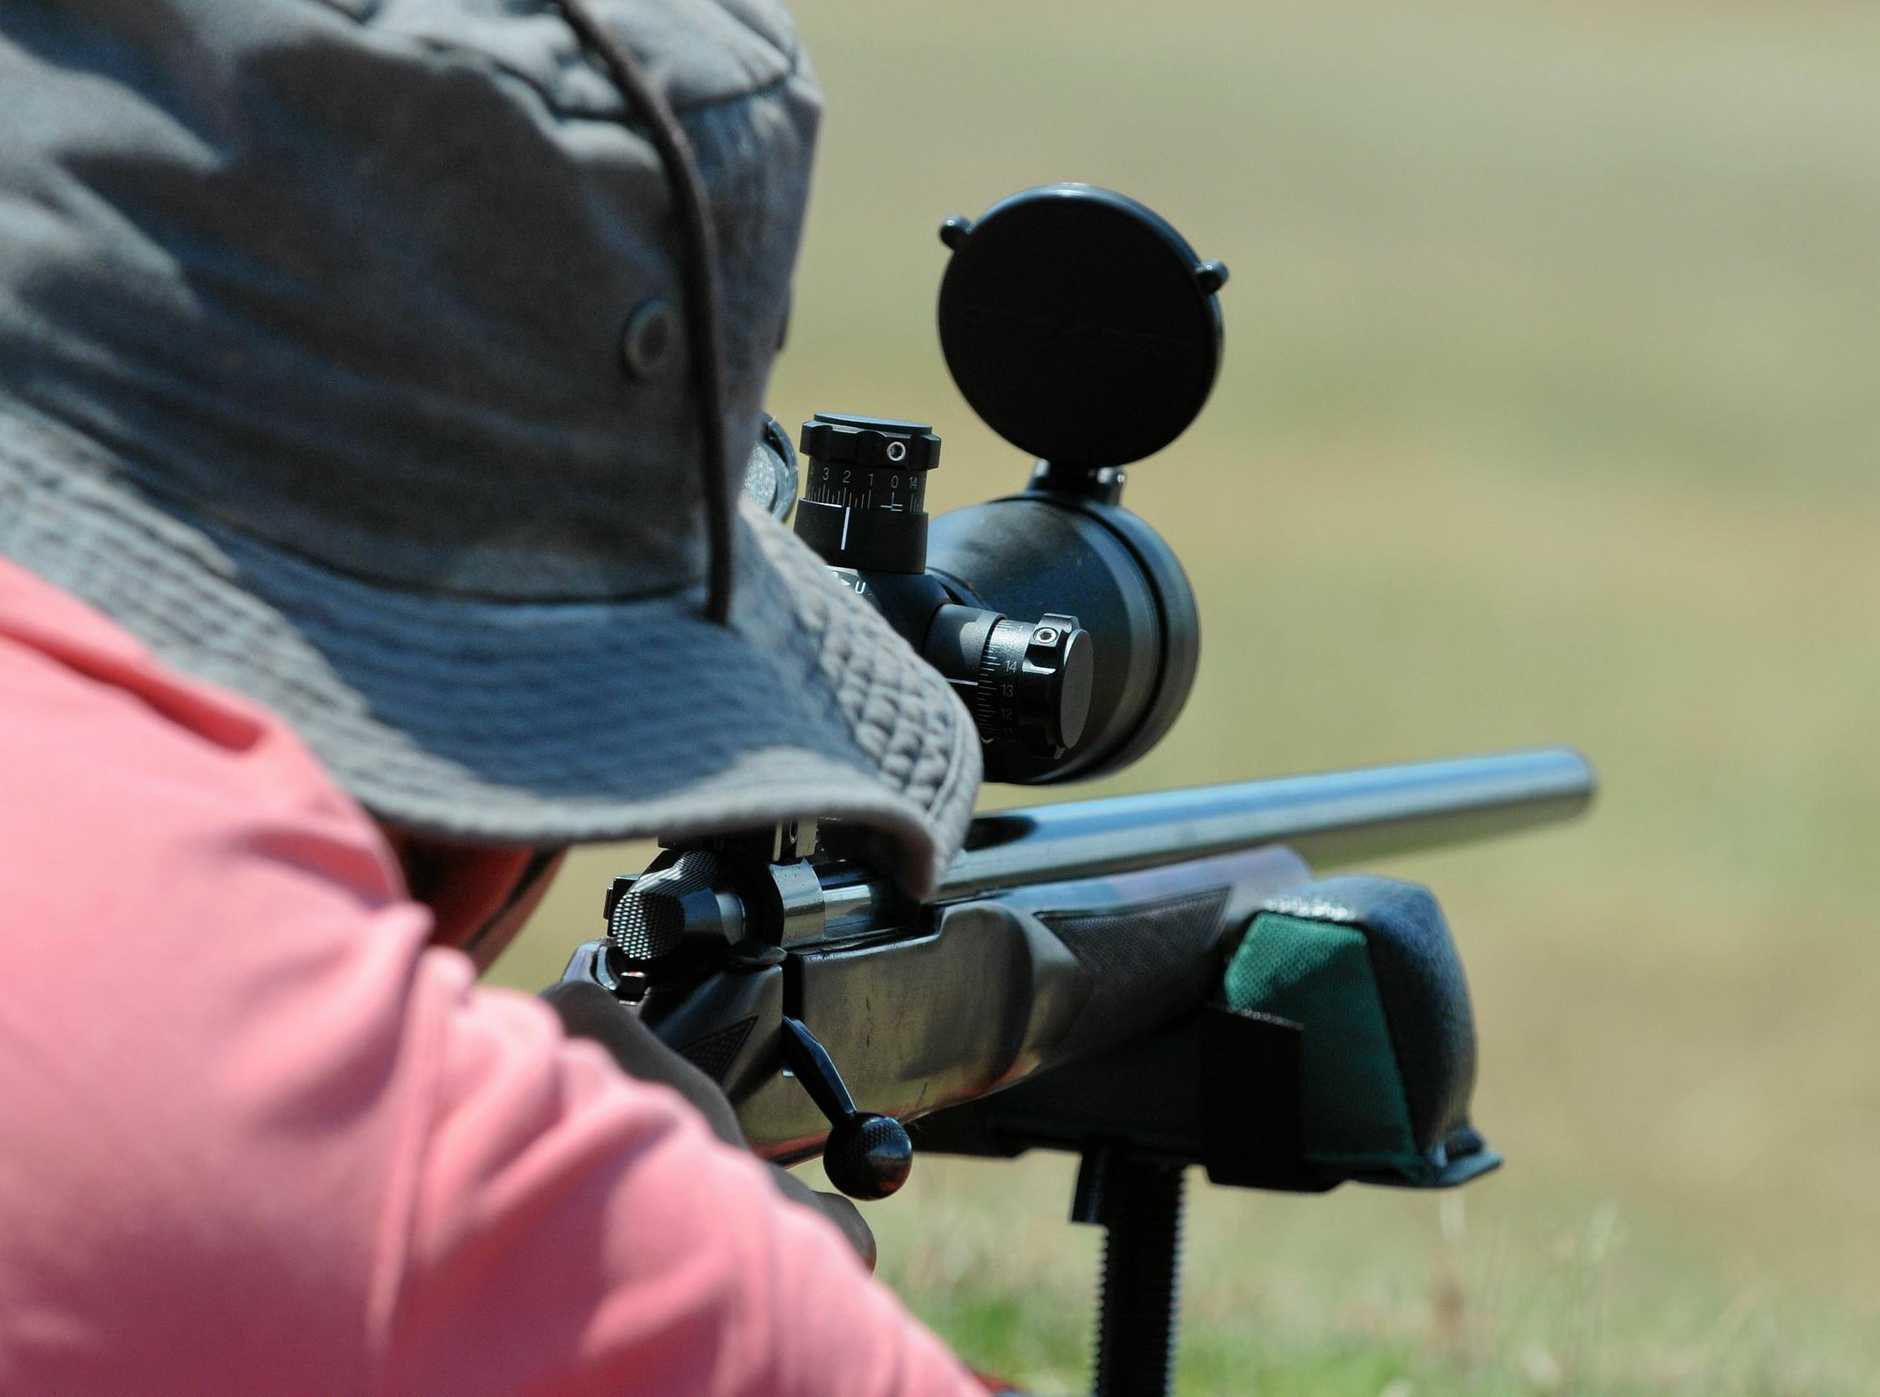 Gympie's shooters face a $10 million start-up hurdle for the long-awaited shooting range, unless a new site can be found.